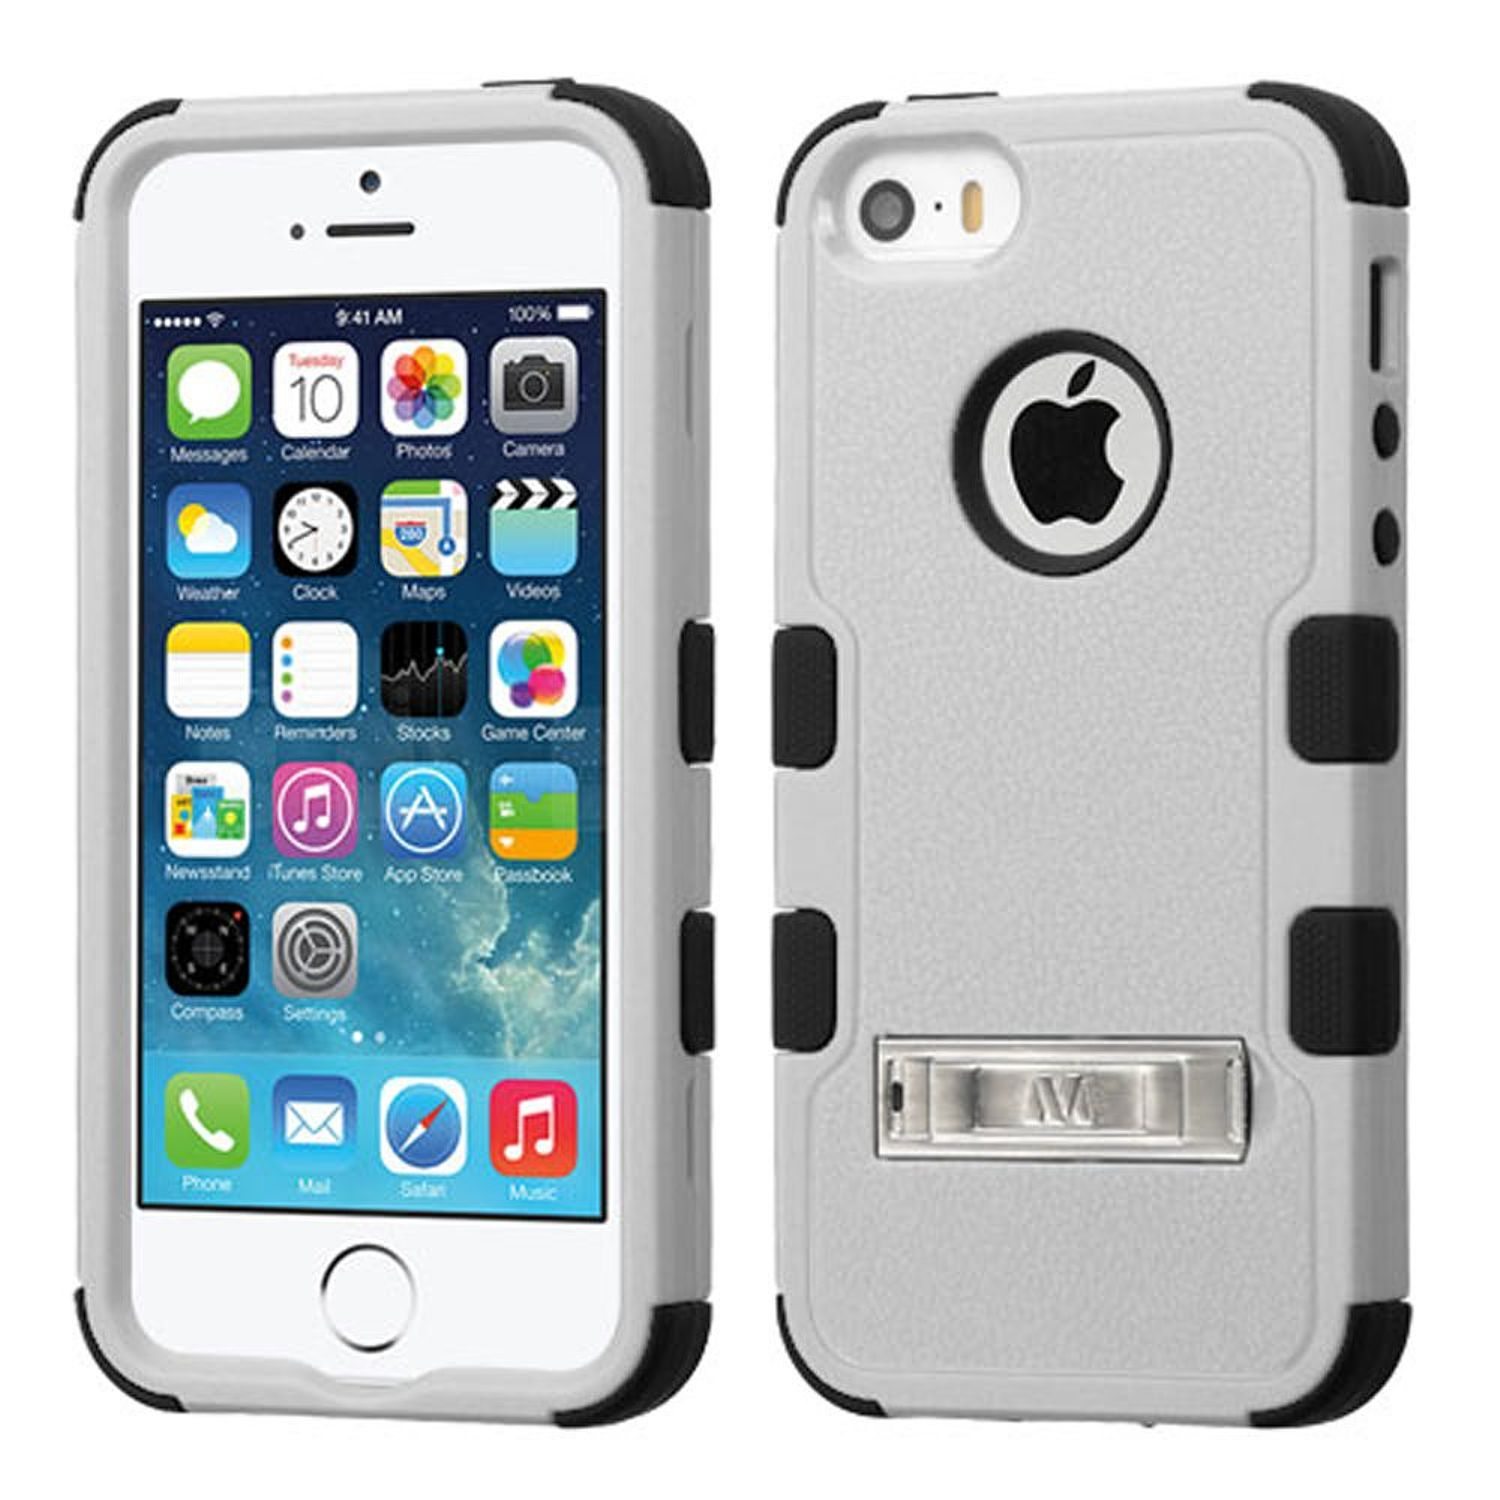 Apple iPhone SE / 5 / 5S Hard Hybrid Silicone Case w/stand by Insten - Gray/Black